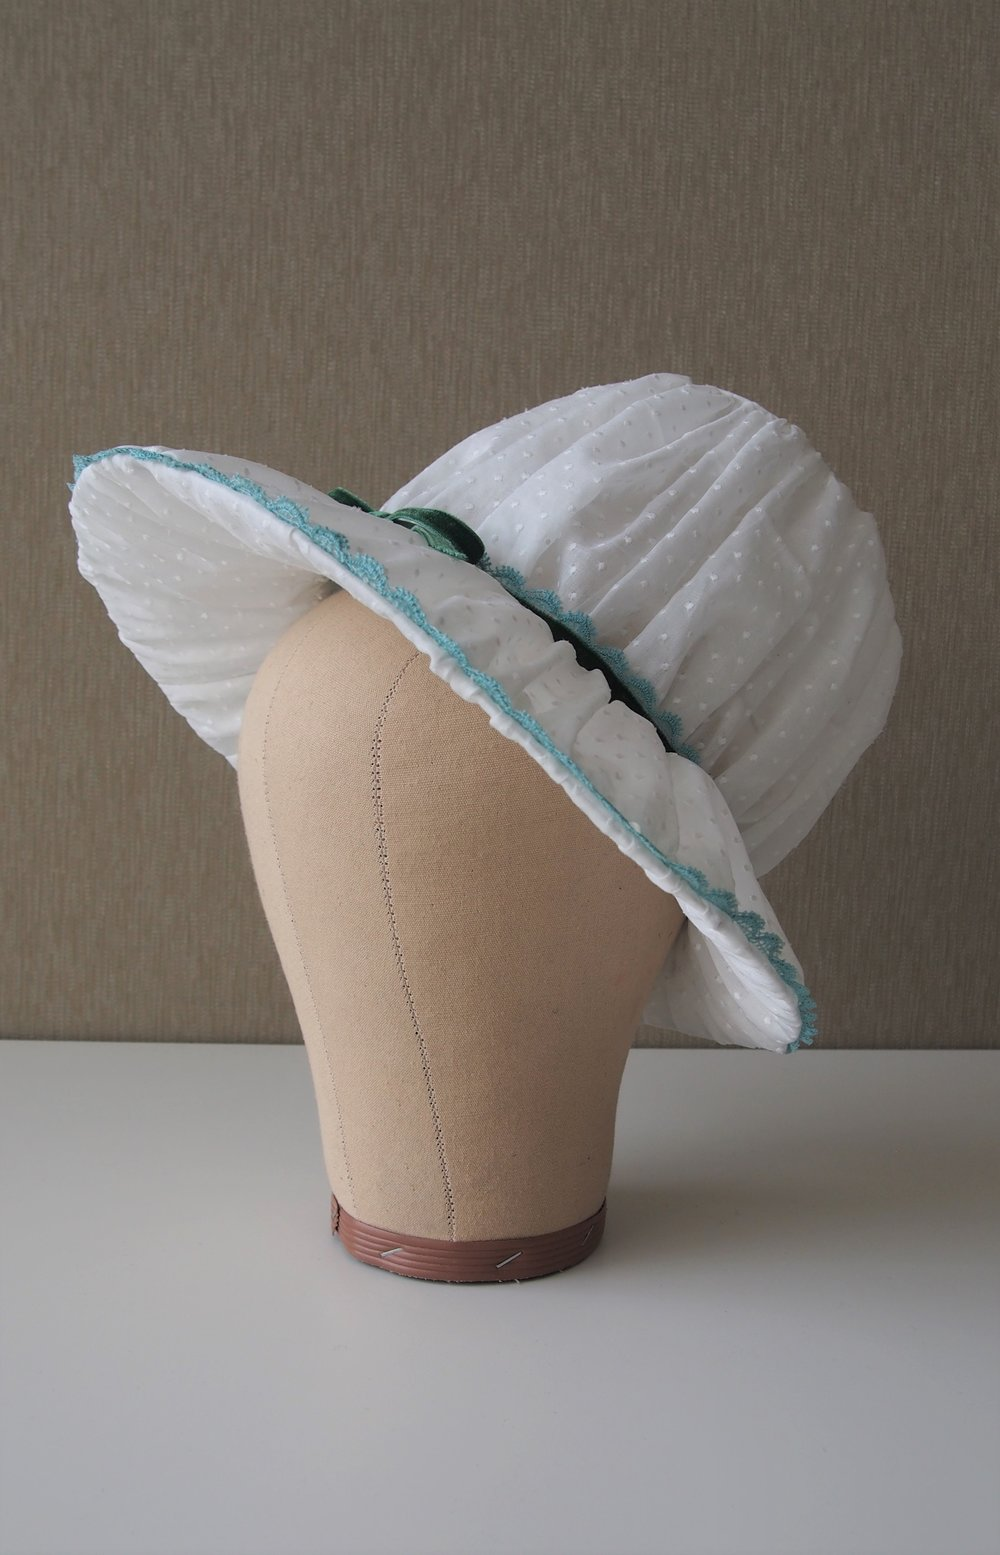 WIRE FRAME REGENCY BONNET